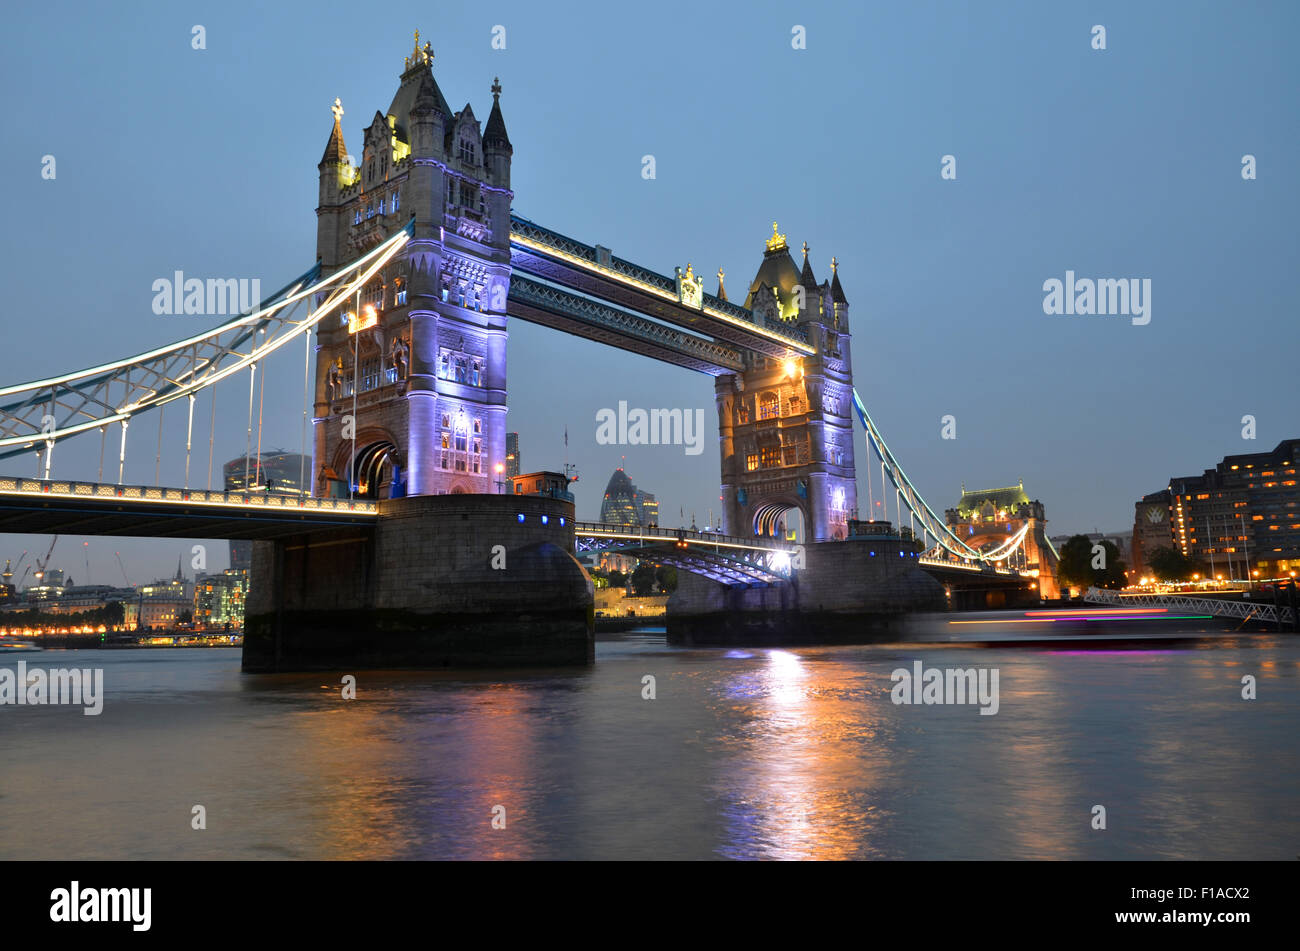 Tower Bridge, London, UK, Großbritannien Stockbild